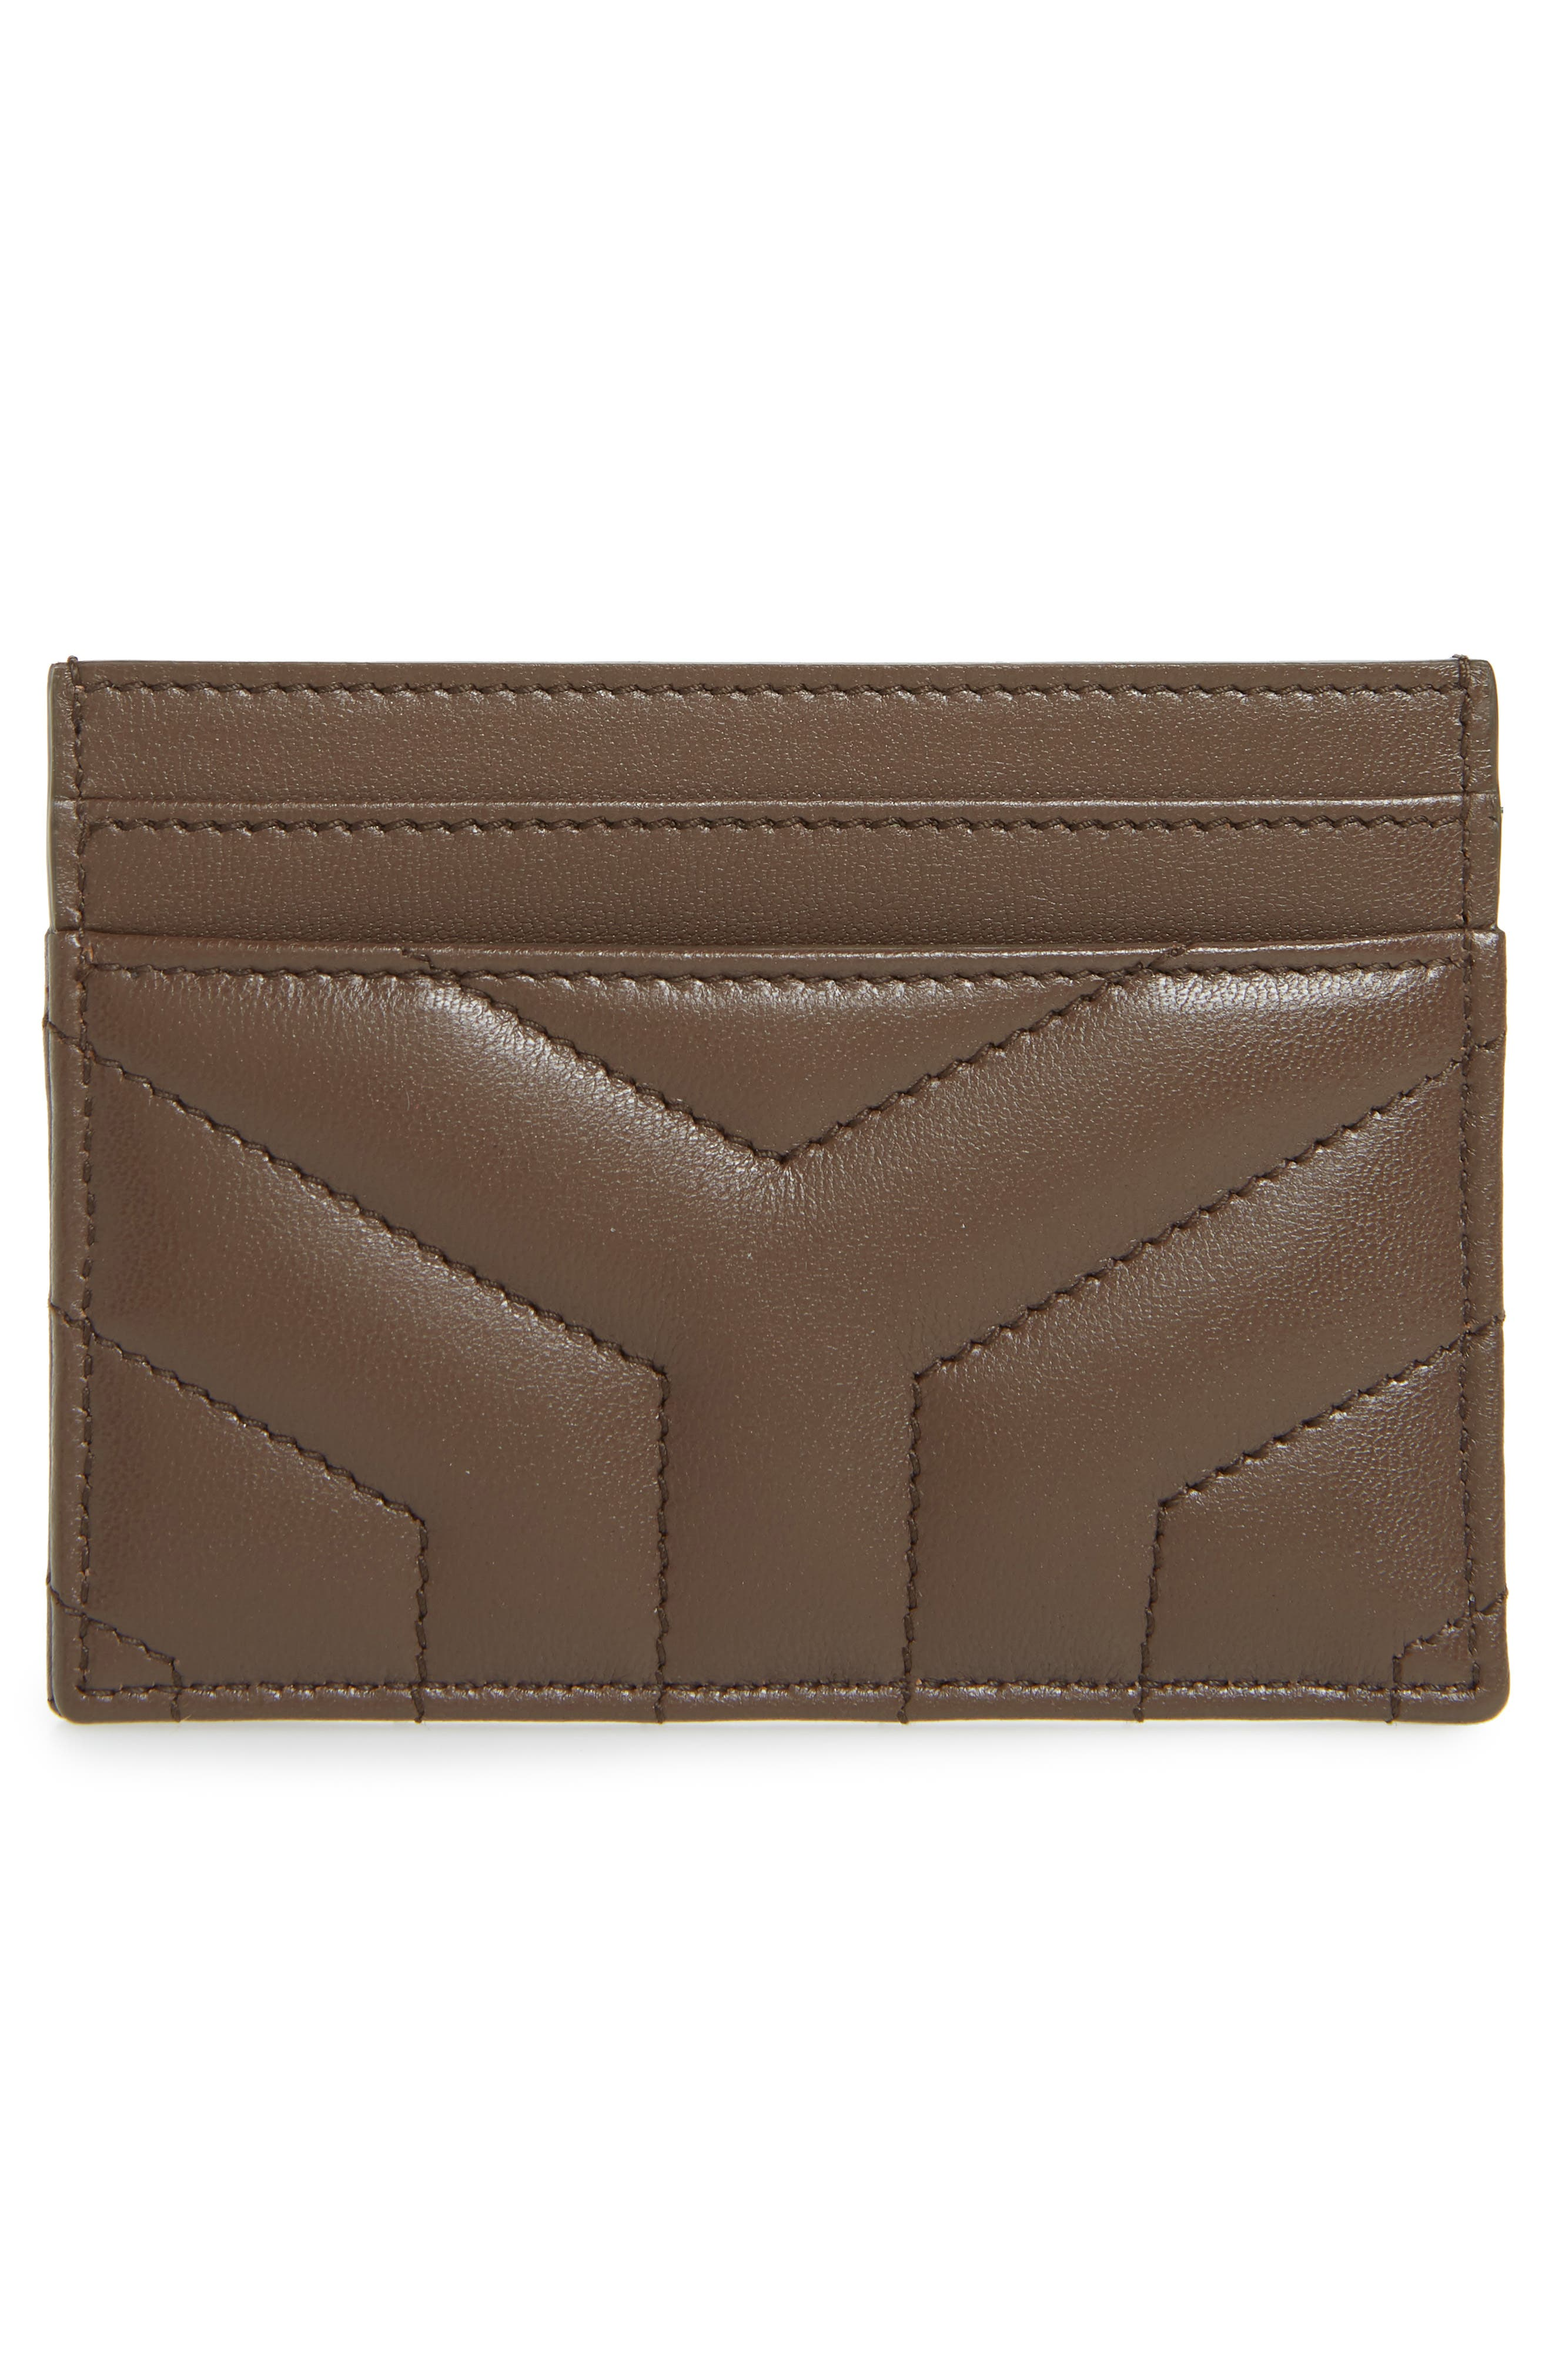 Loulou Monogram Quilted Leather Credit Card Case,                             Alternate thumbnail 2, color,                             FAGGIO